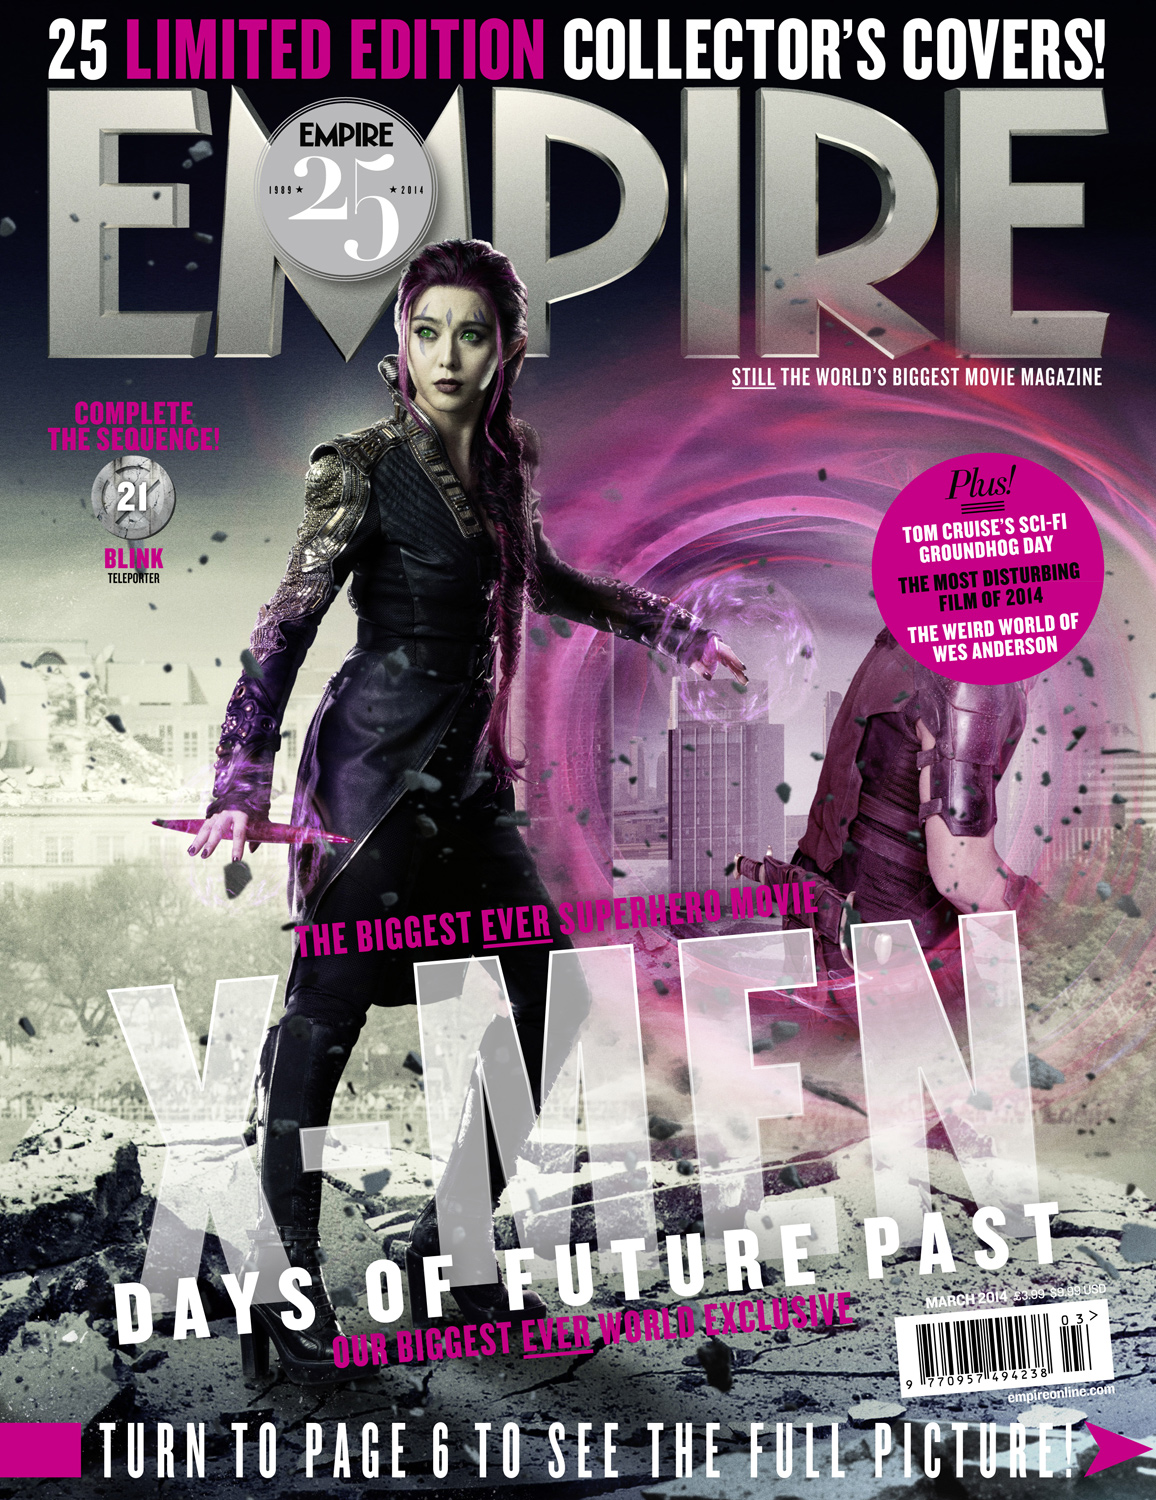 Empire - XDOFP Cover - 021 - Blink